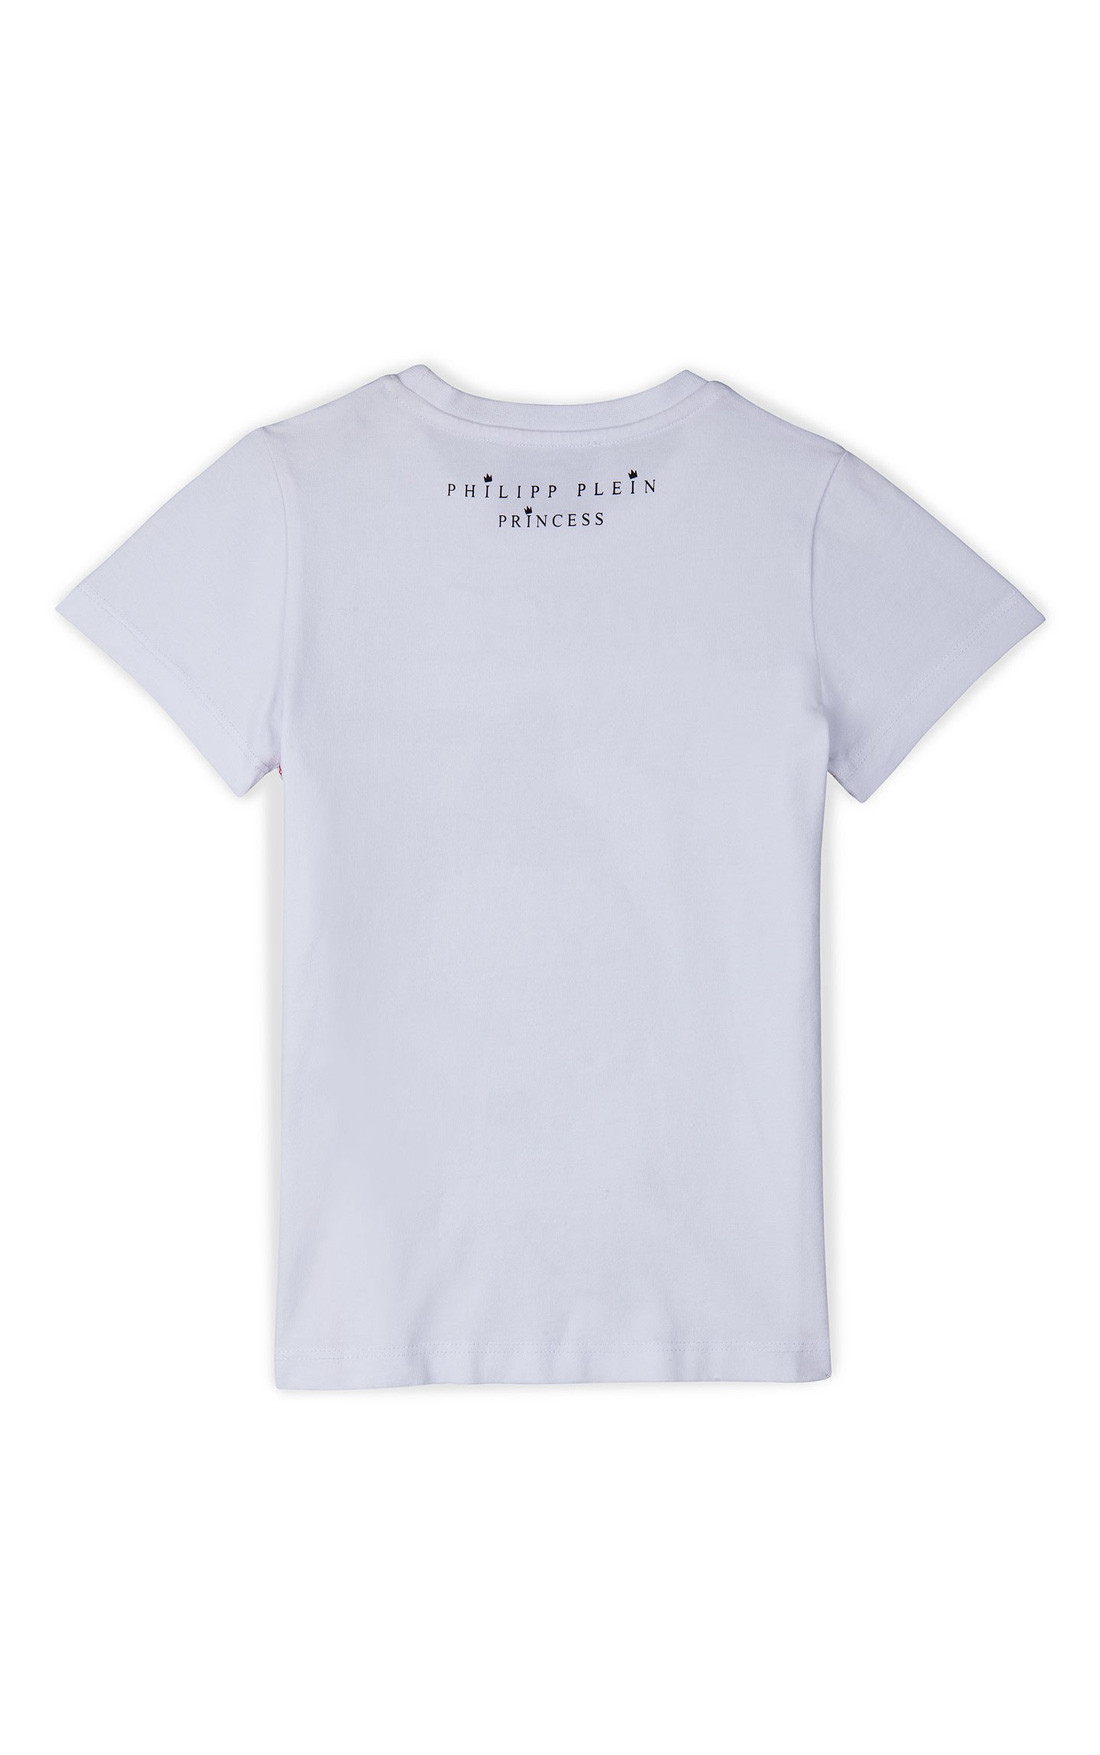 Philipp Plein - Cross White T-Shirt (P17C-GTK0007-PJY002N_01)